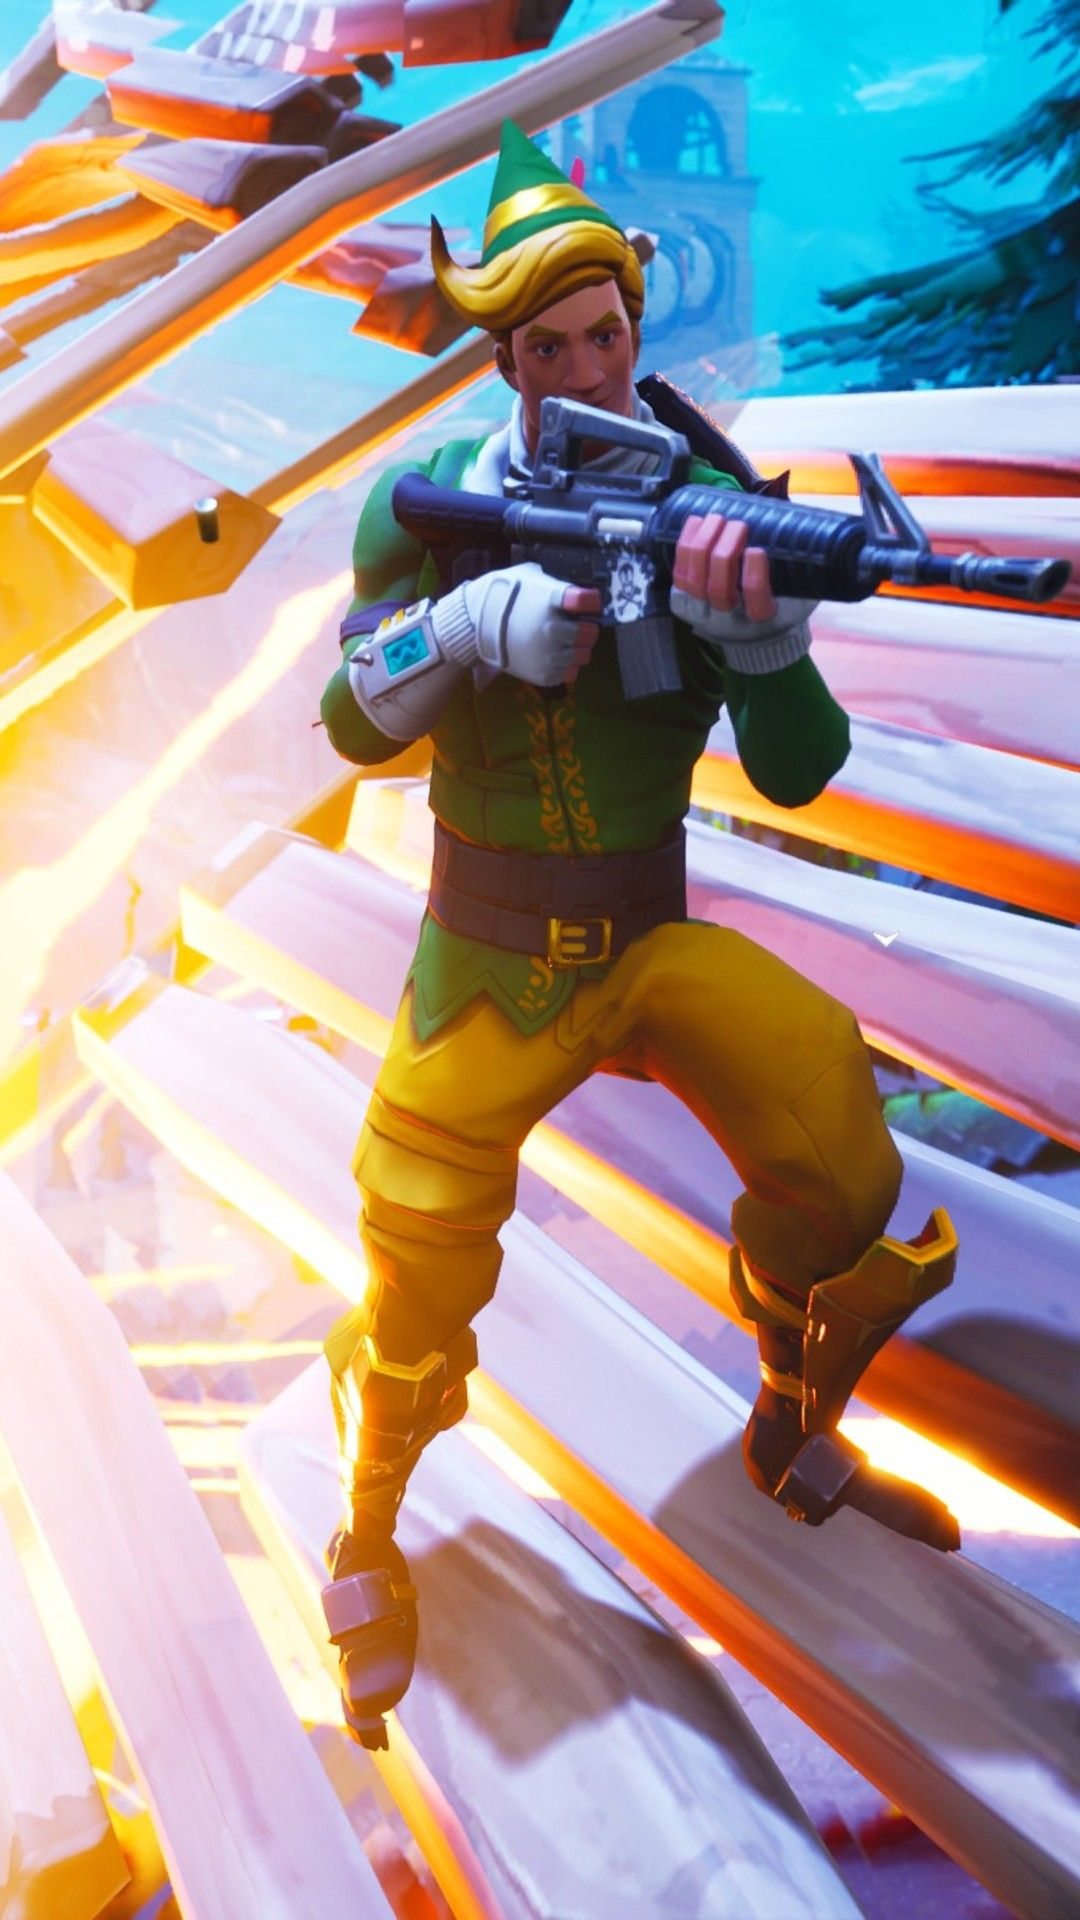 Fortnite Wallpapers 22 Hd Phone Backgrounds Phone Backgrounds Gaming Wallpapers Hd